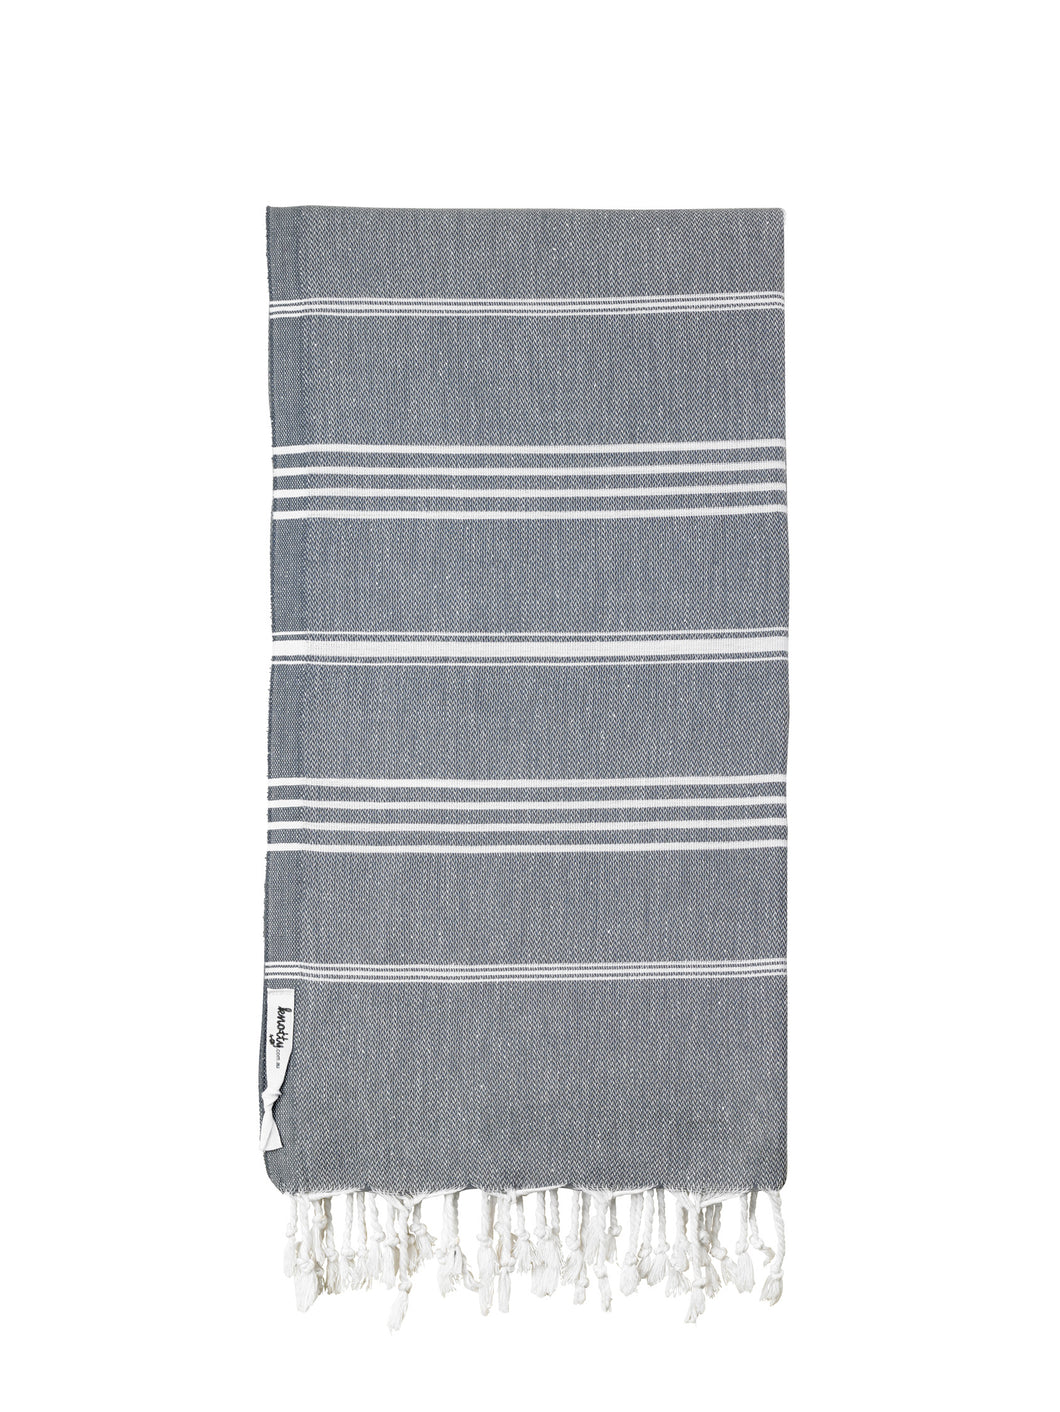 Knotty Original Turkish Towel | Charcoal